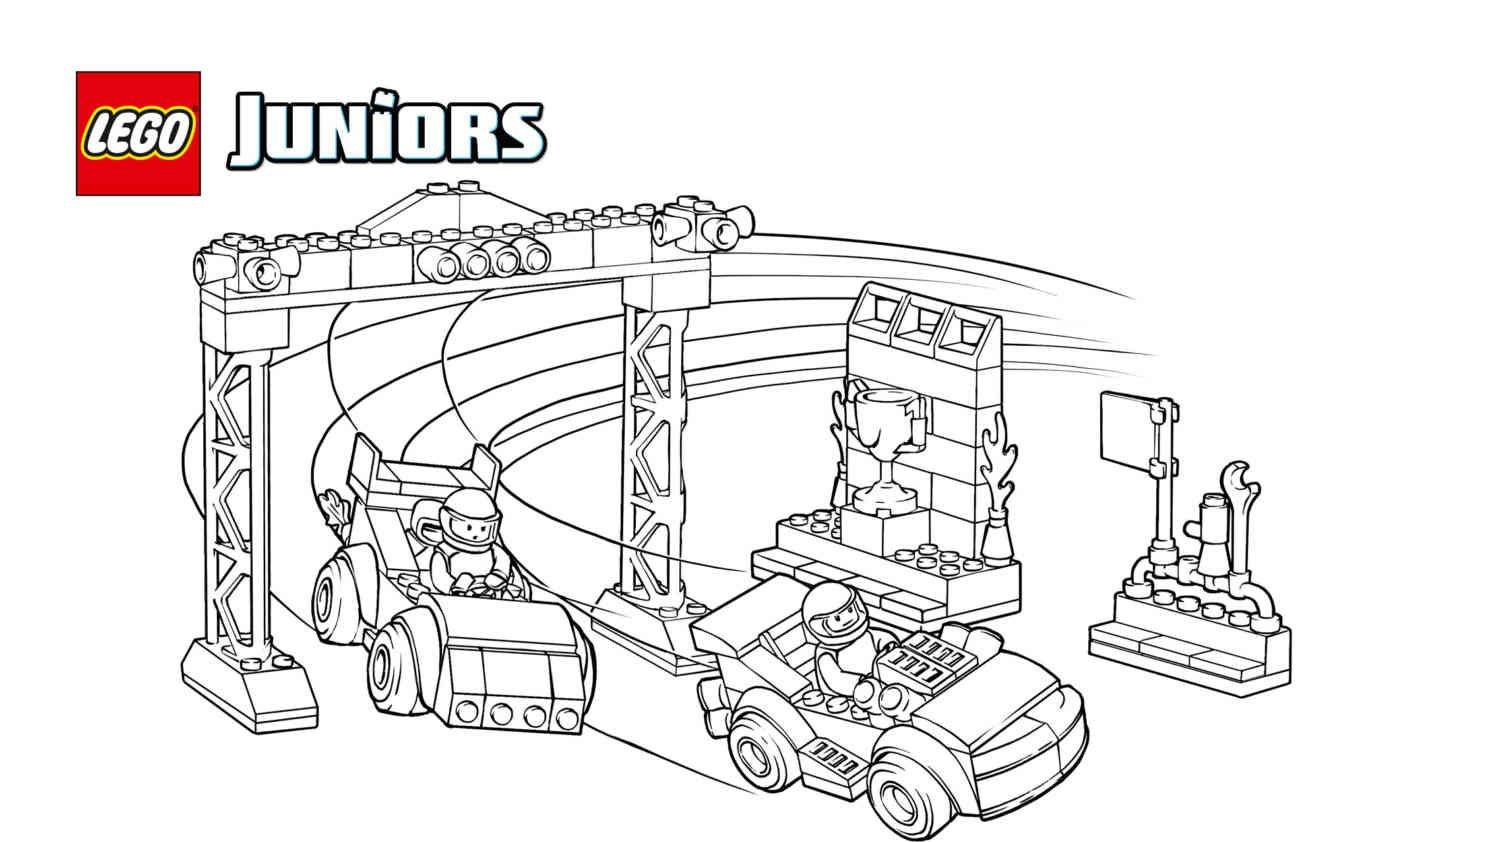 free printable race car competition coloring page from lego juniors featuring two minifigures going head to head to win first place - Race Car Color Pages